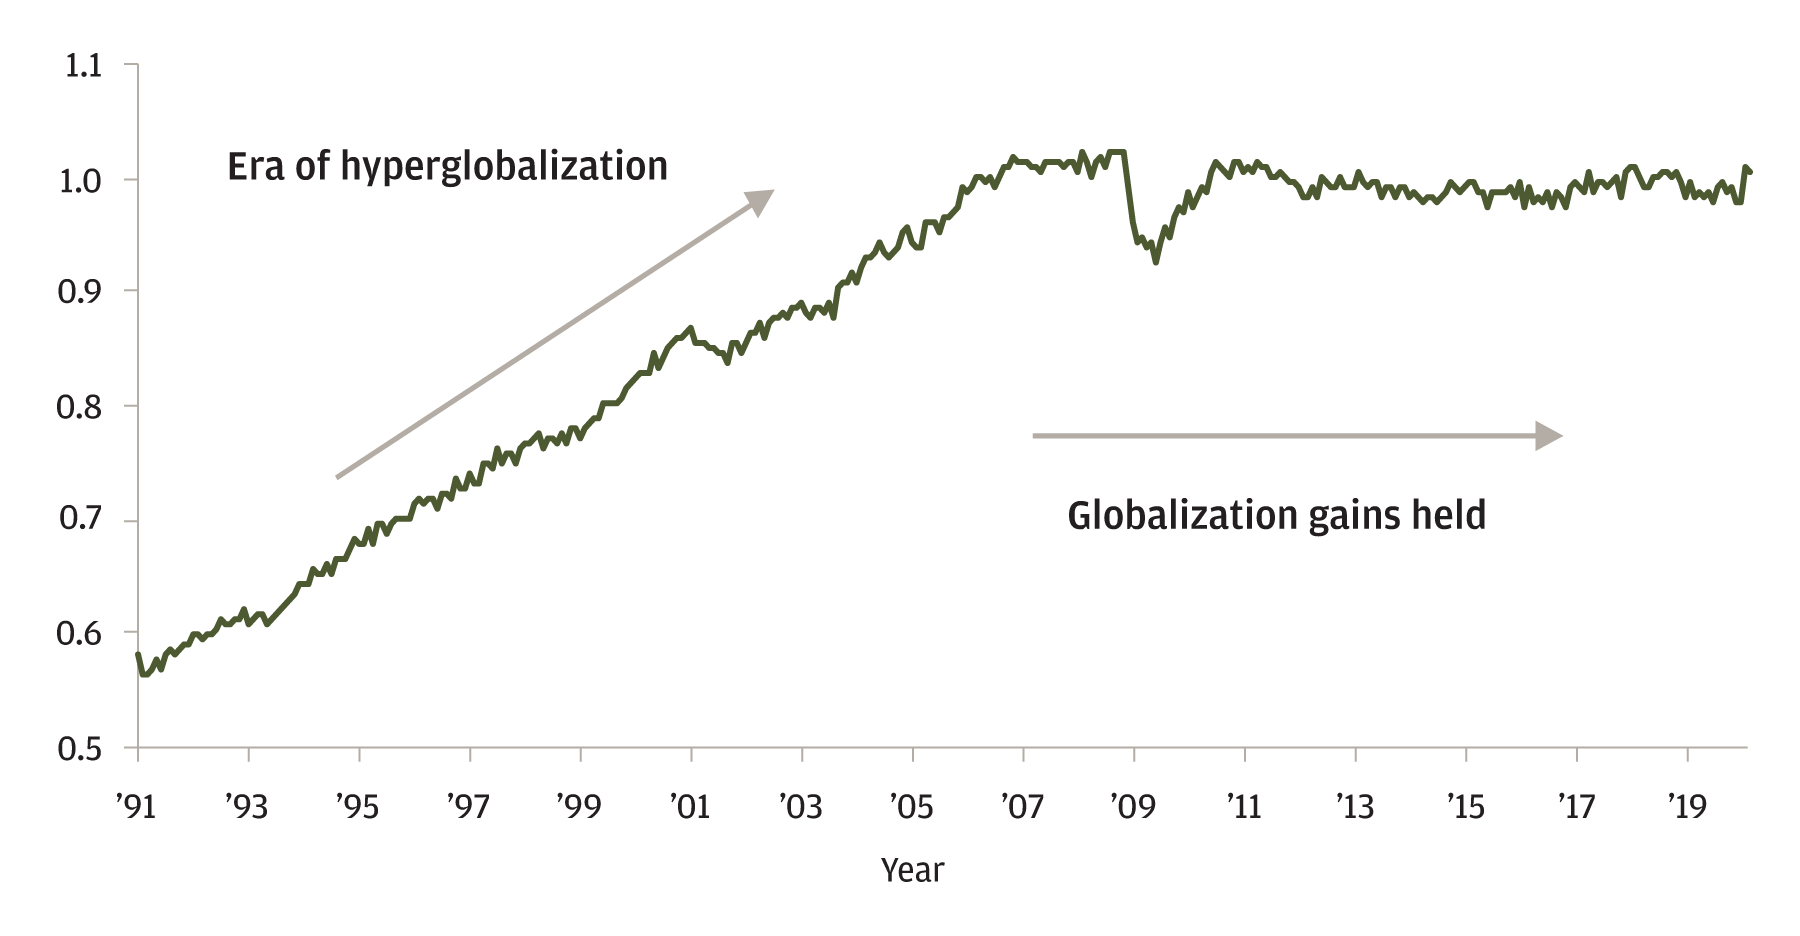 "The chart displays the ratio of global trade to global industrial production from the 1990's through now. It indicates, that in the early 1990s to about 2007—the era of ""hyperglobalization"", that globalization increased. From 2007 to now, the gains have remained steady."